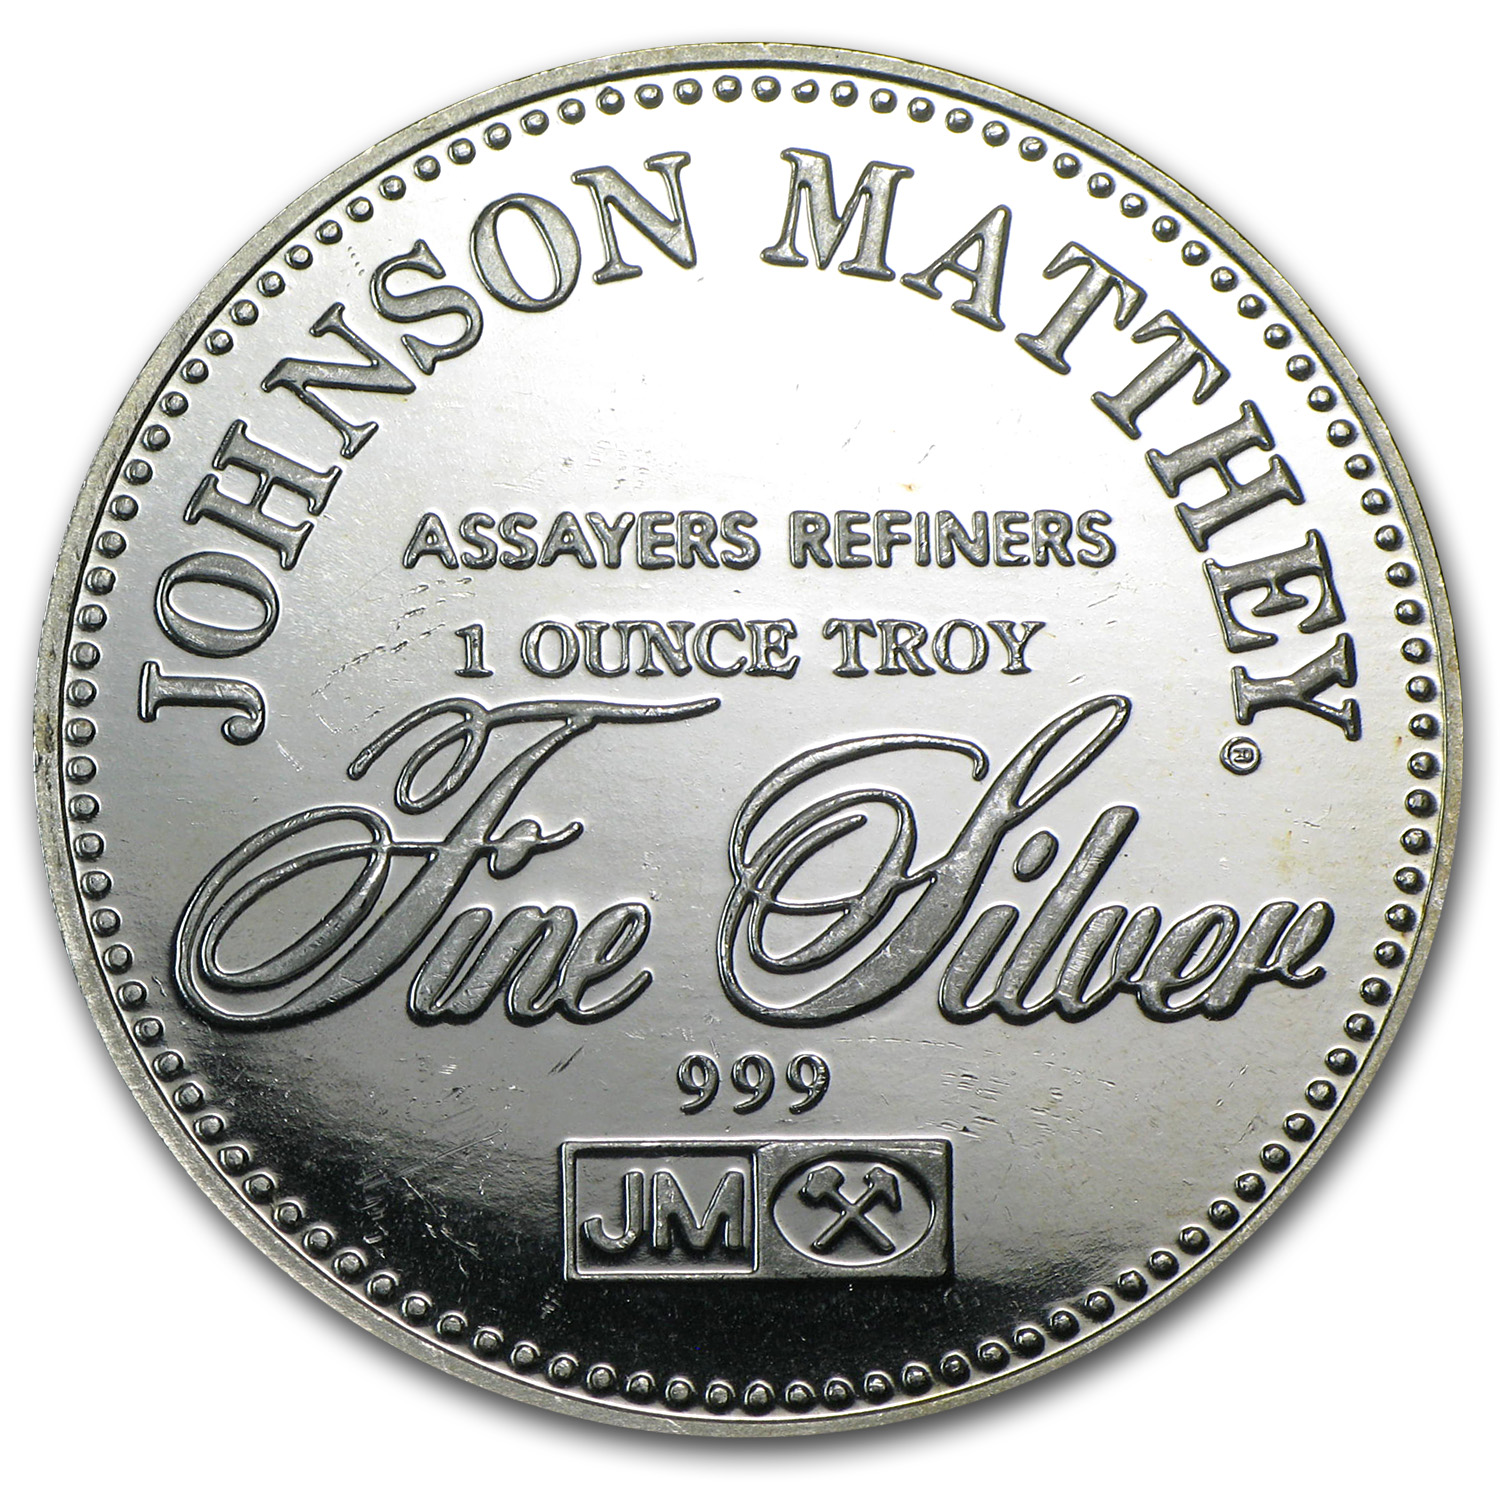 1 oz Silver Rounds - Johnson Matthey (Sealed/Right to Privacy)